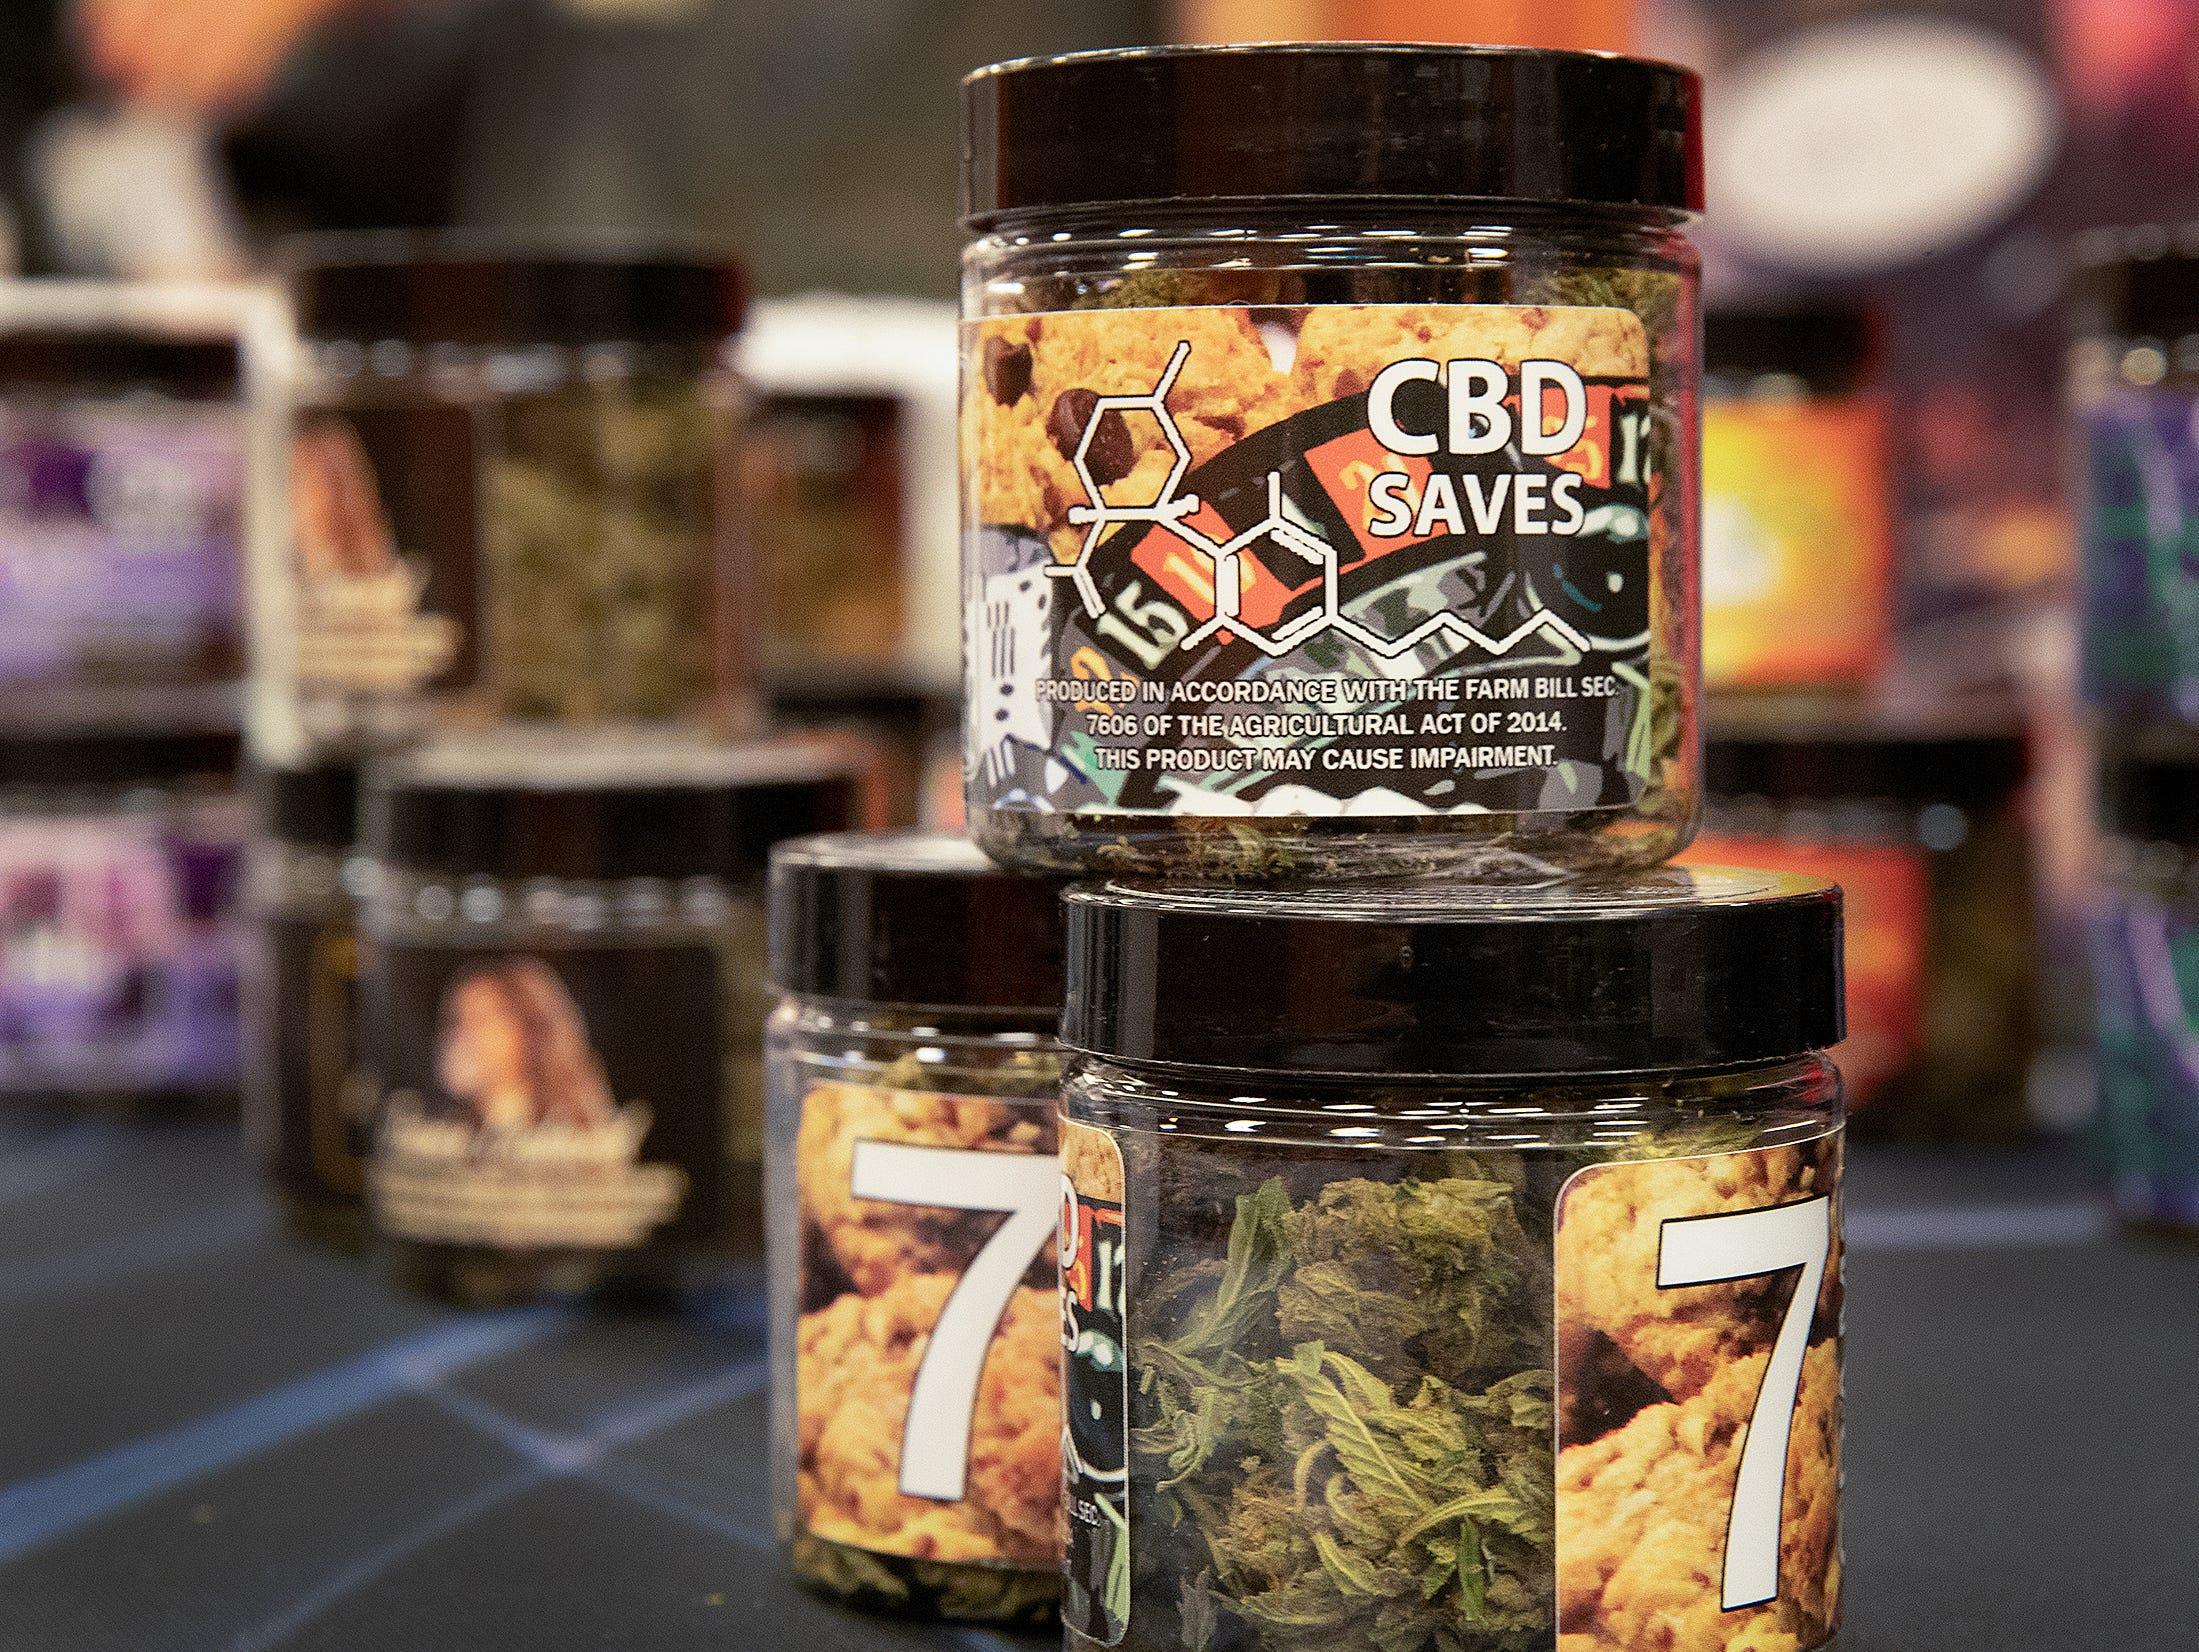 CBD Up In Smoke Hemp Flower at the CBD Expo at the Marriott East in Indianapolis on Friday, Mar. 15, 2019.